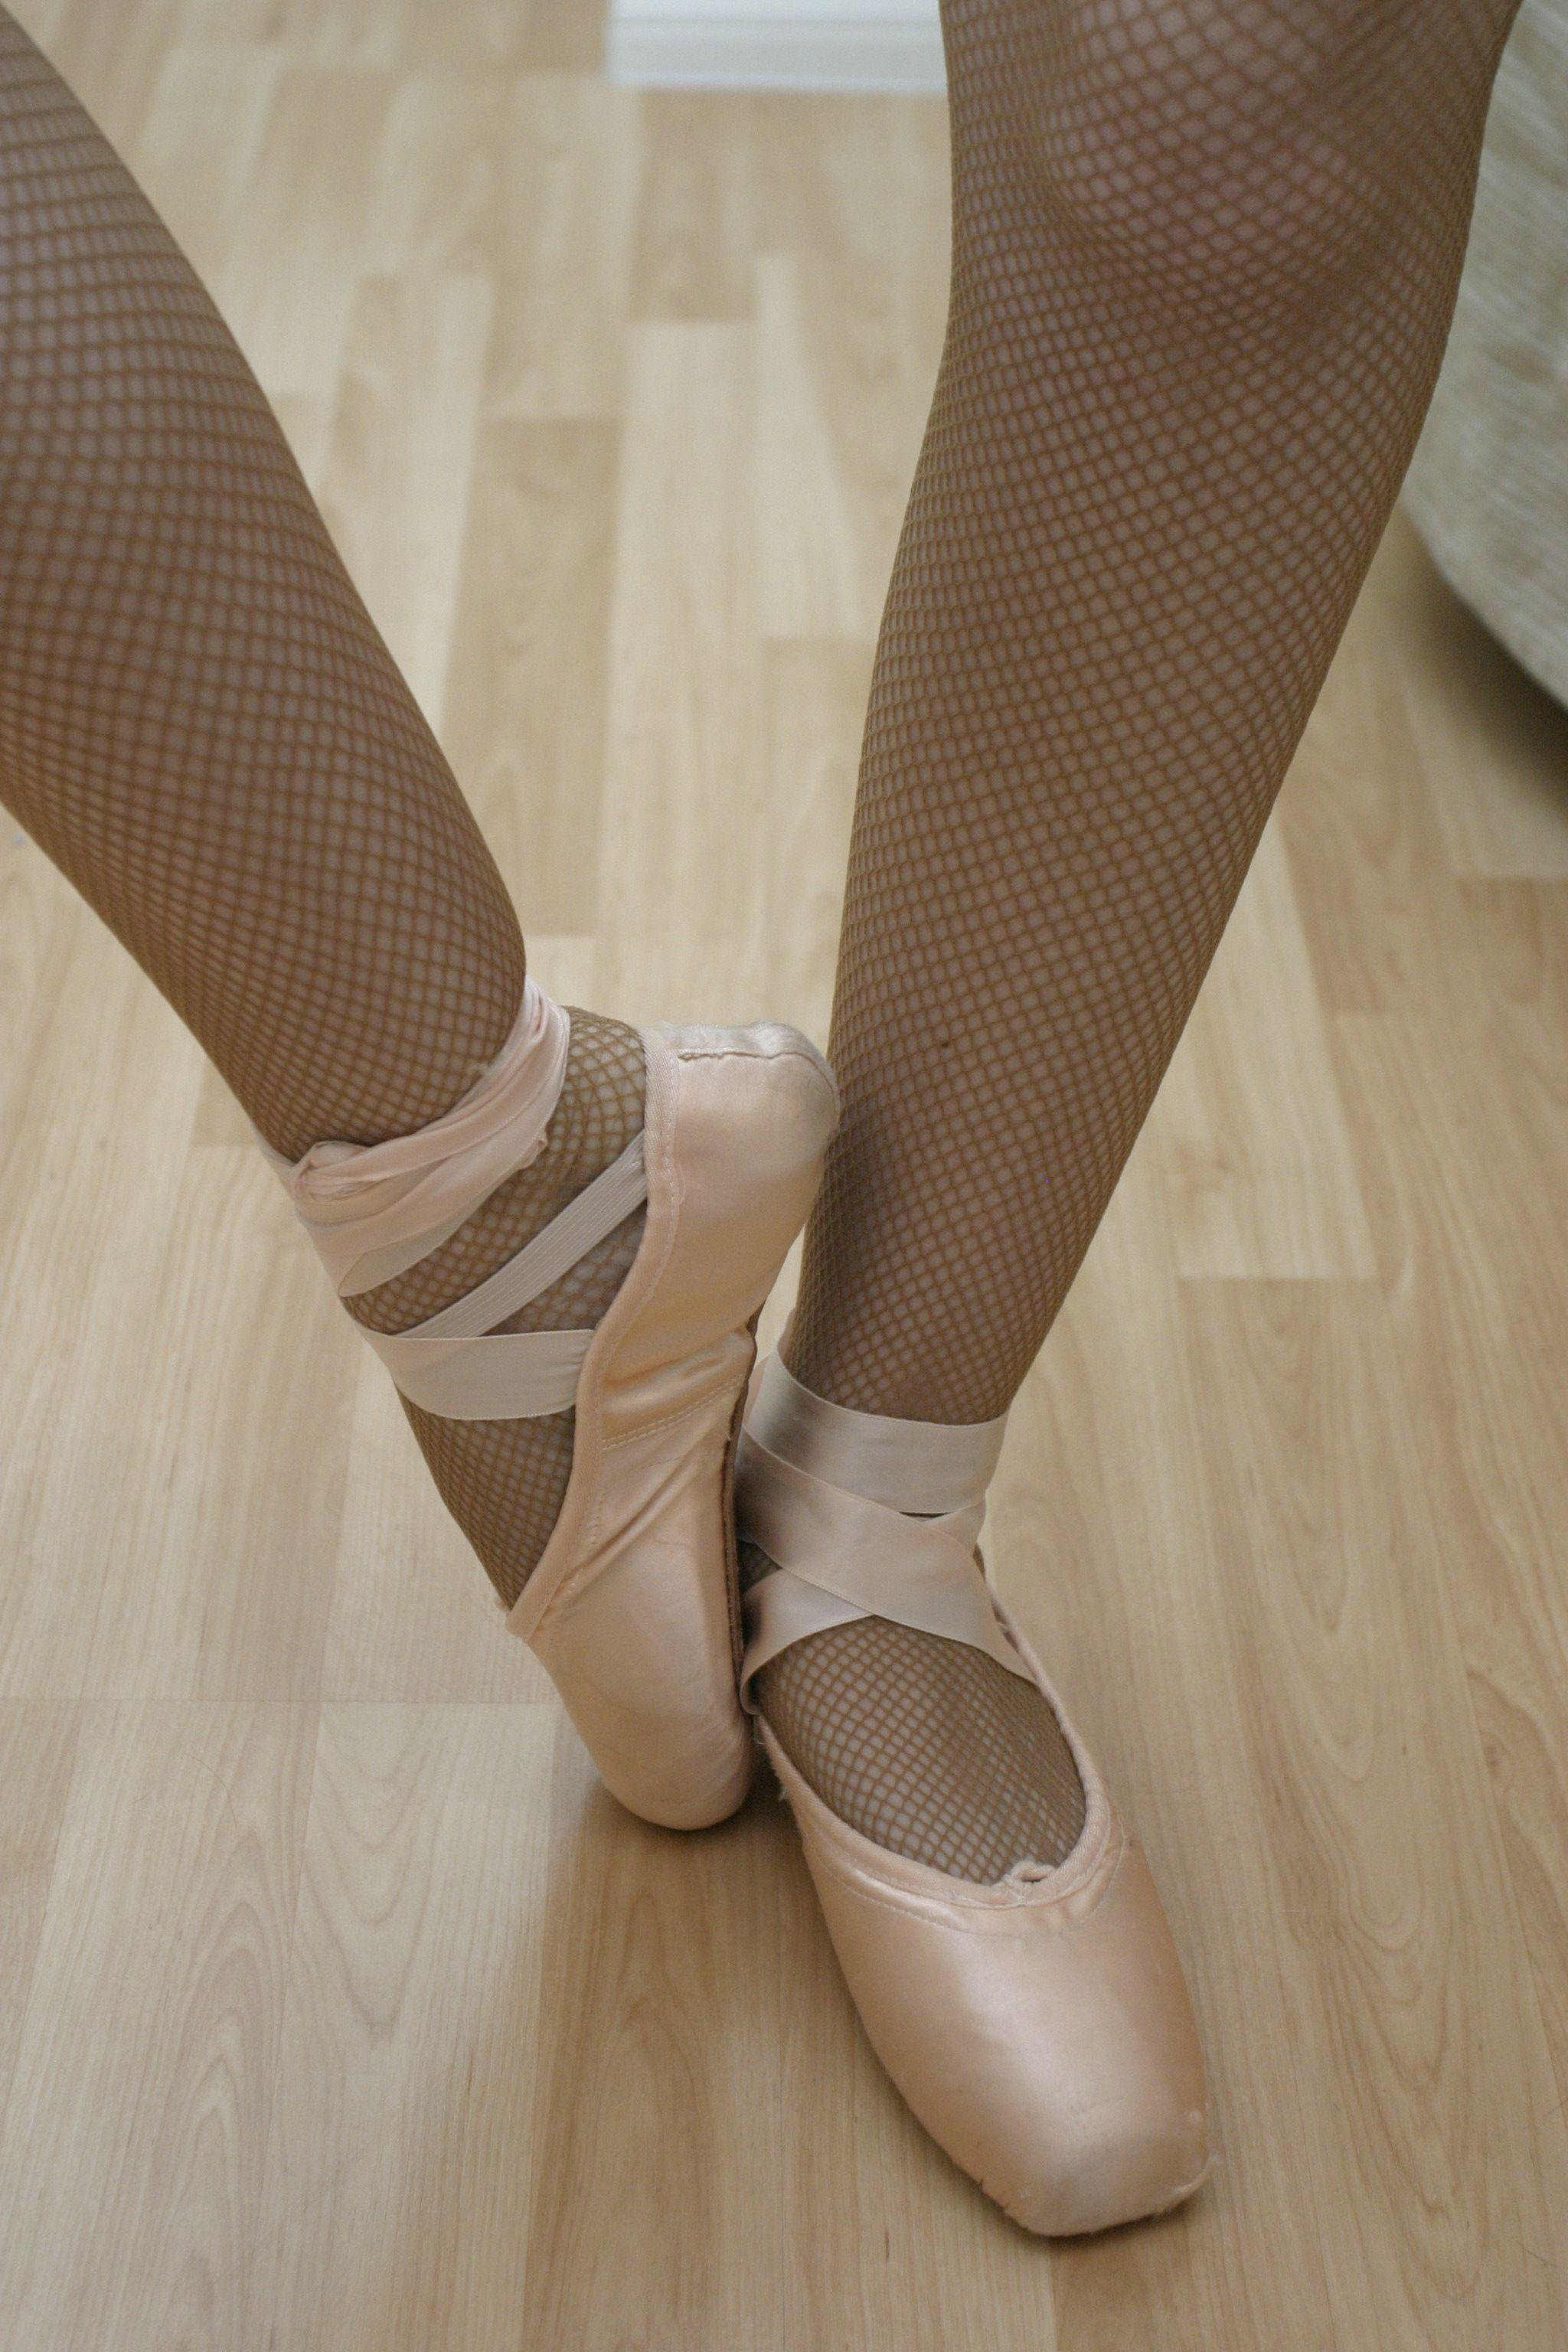 Pointe Shoes Wallpapers - Wallpaper Cave